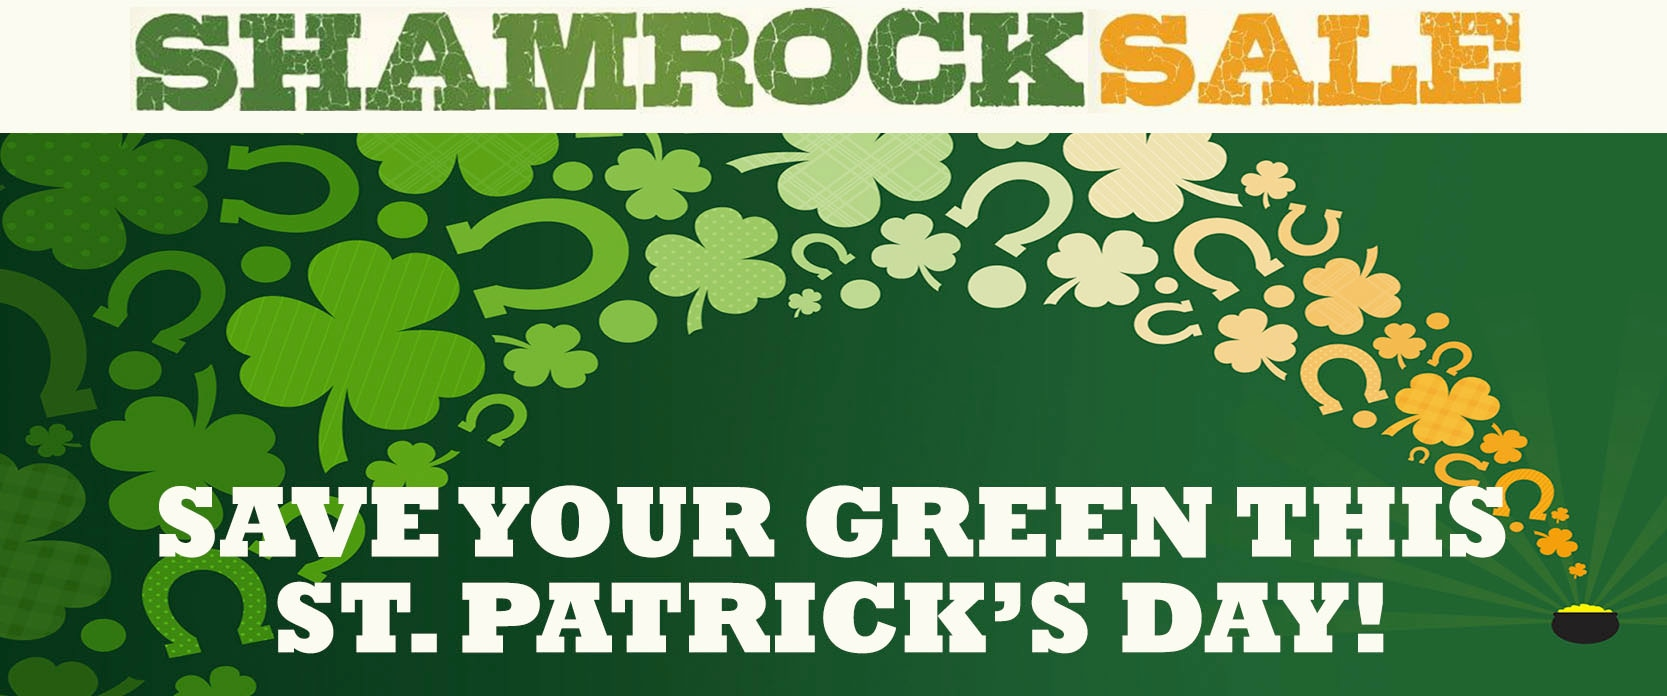 St Patrick's Day Offers at Courtesy Chrysler Dodge Jeep RAM in Tampa, Florida